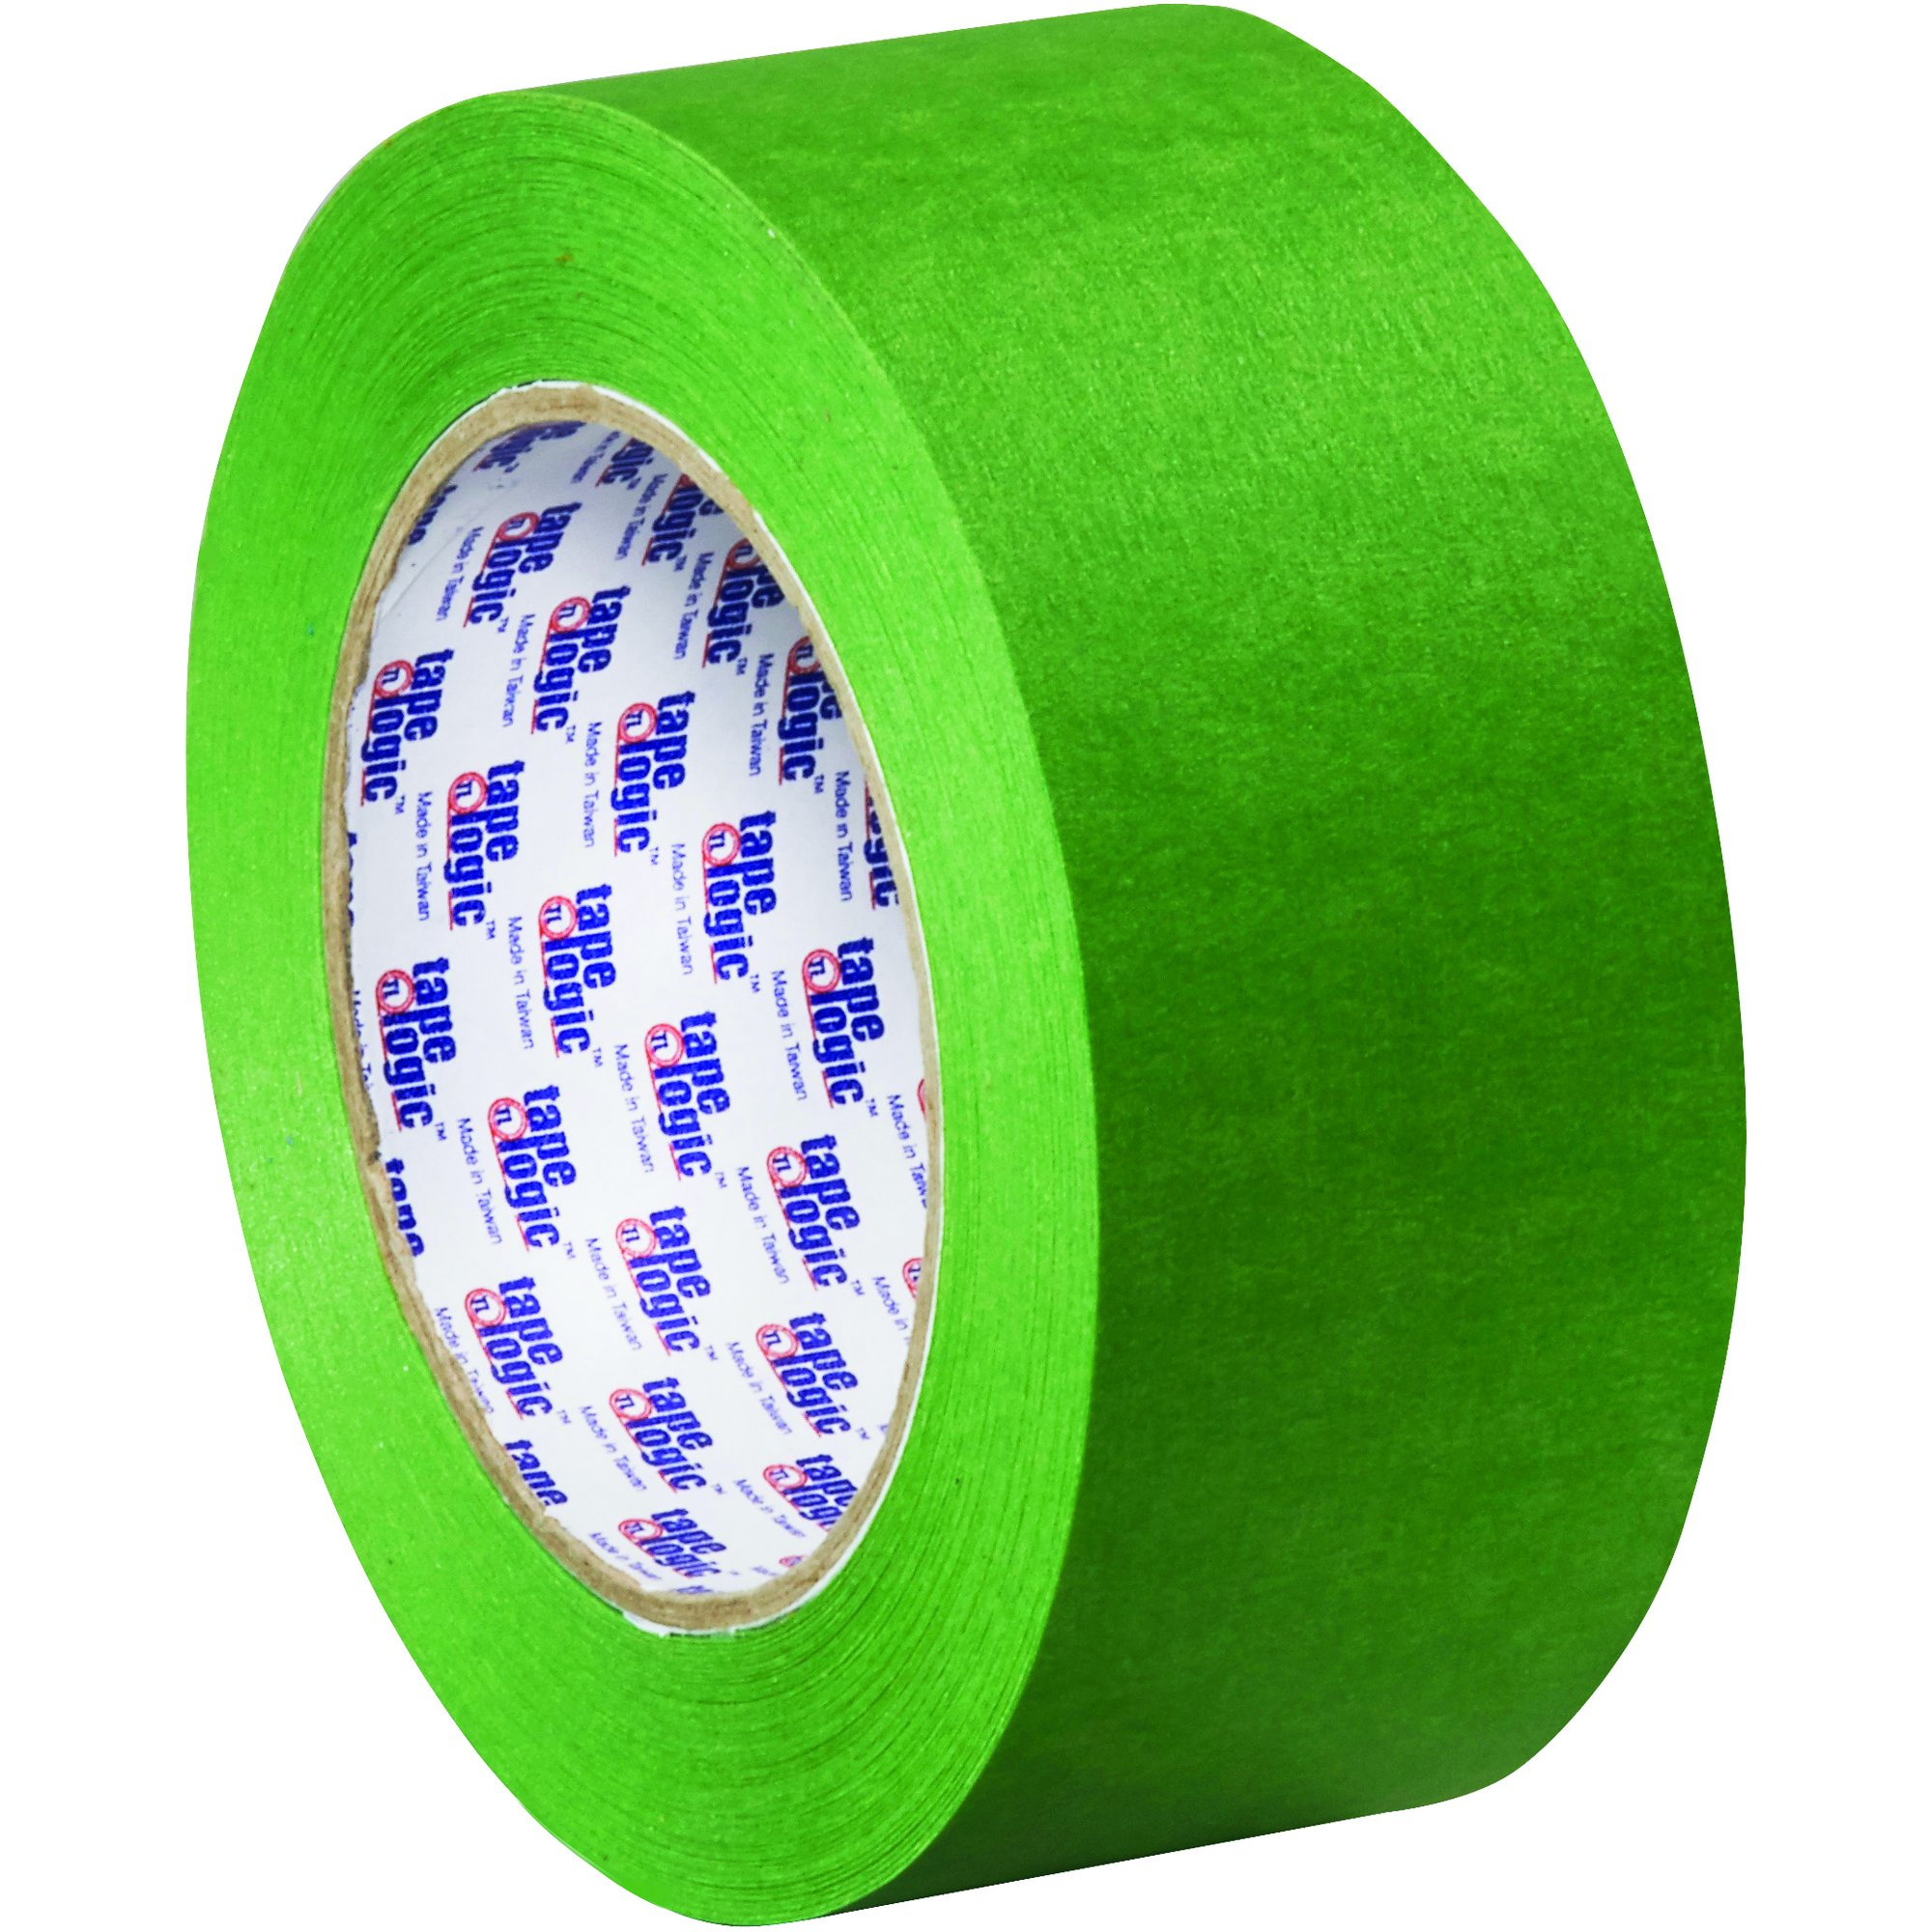 BOX USA BT937320012PK Tape Logic 3200 Painter's Tape, 2'' x 60 yd., Green (Pack of 12) by BOX USA